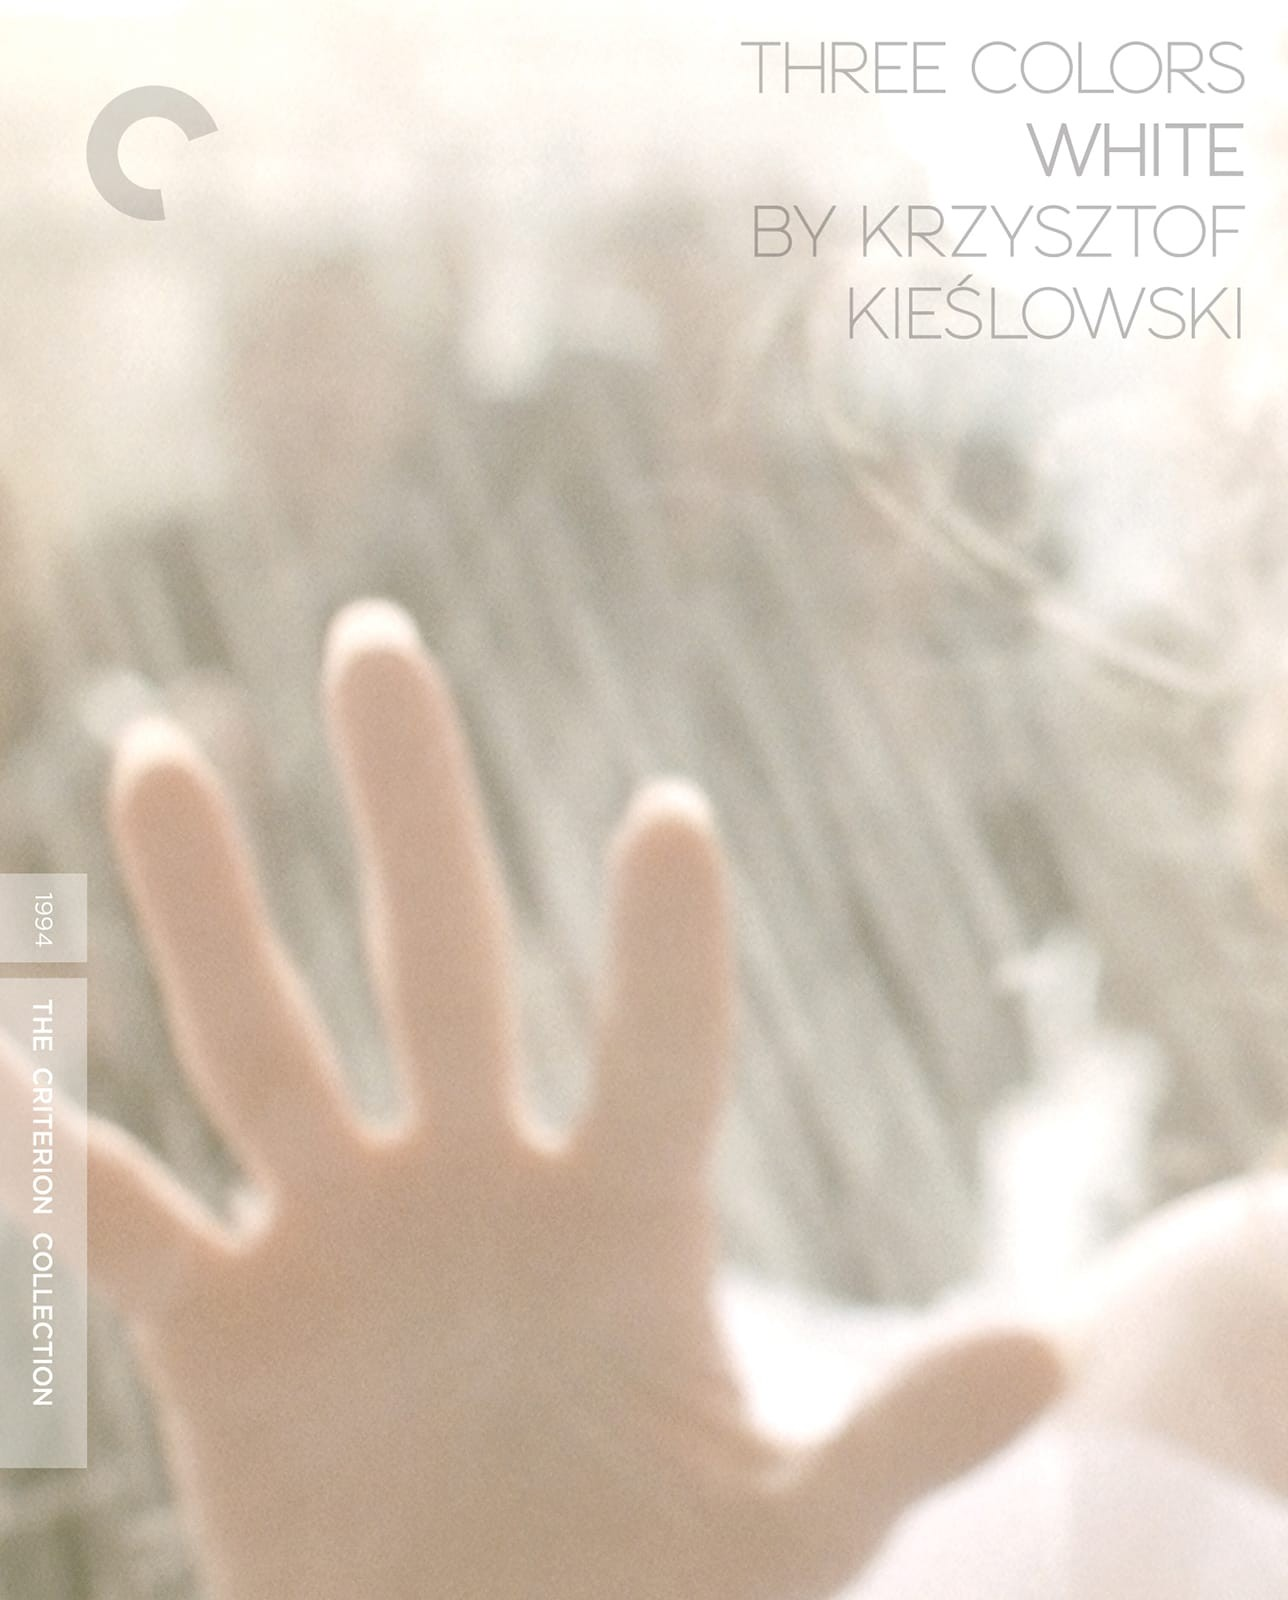 Three Colors: White (1994) - Directed by: Krysztof KieslowskiStarring: Zbigniew Zamachowski, Julie Delpy, Janusz GajosRated: R for Some Sexuality and LanguageRunning Time: 1 h 30 mTMM Score: 4.5 stars out of 5STRENGTHS: Story, Cinematography, Acting, Directing, HumorWEAKNESSES: -